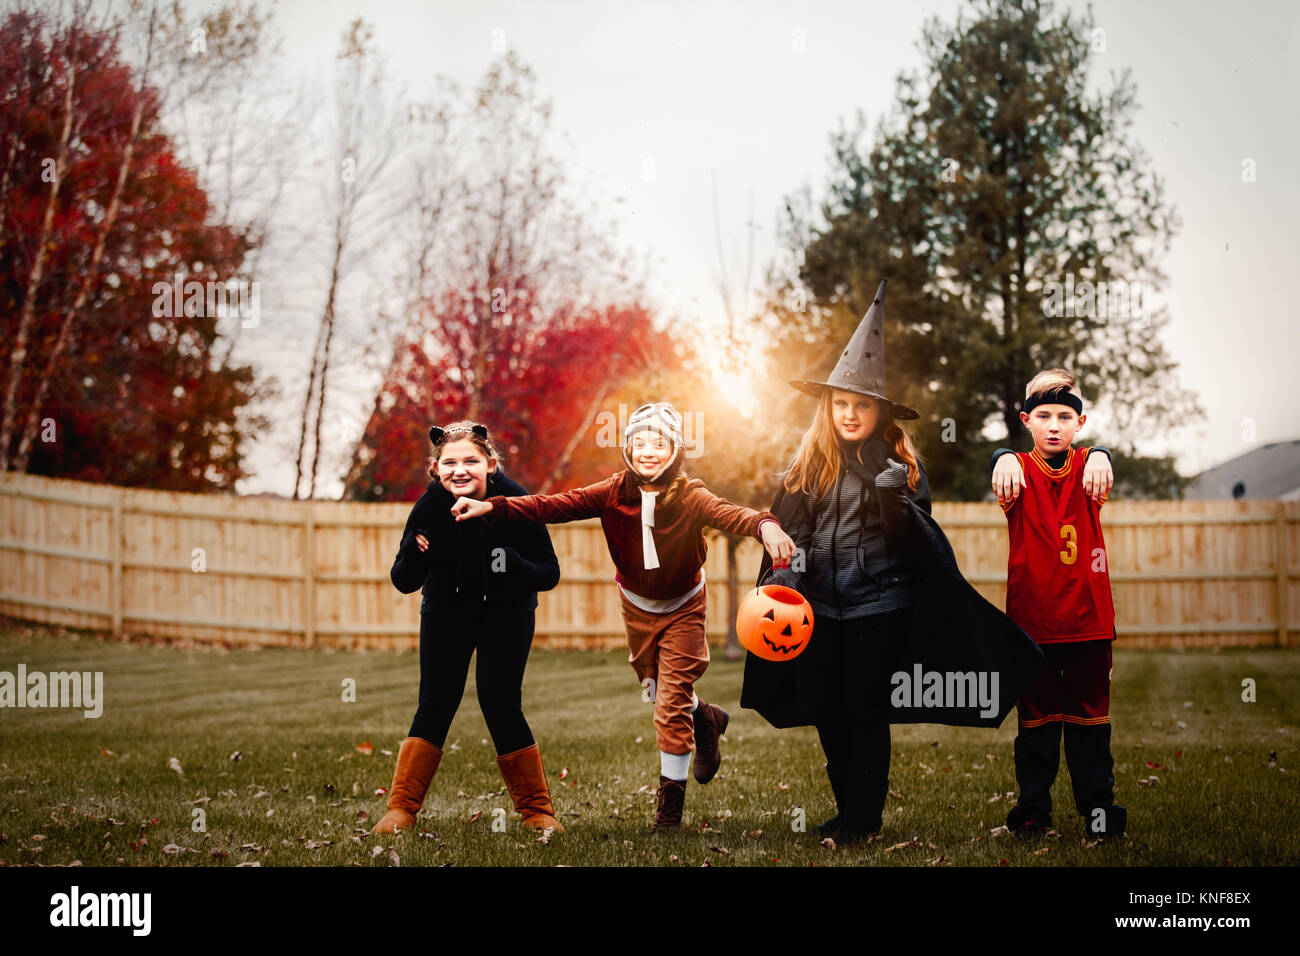 Portrait of boy and girls posed in halloween costumes in garden at sunset - Stock Image